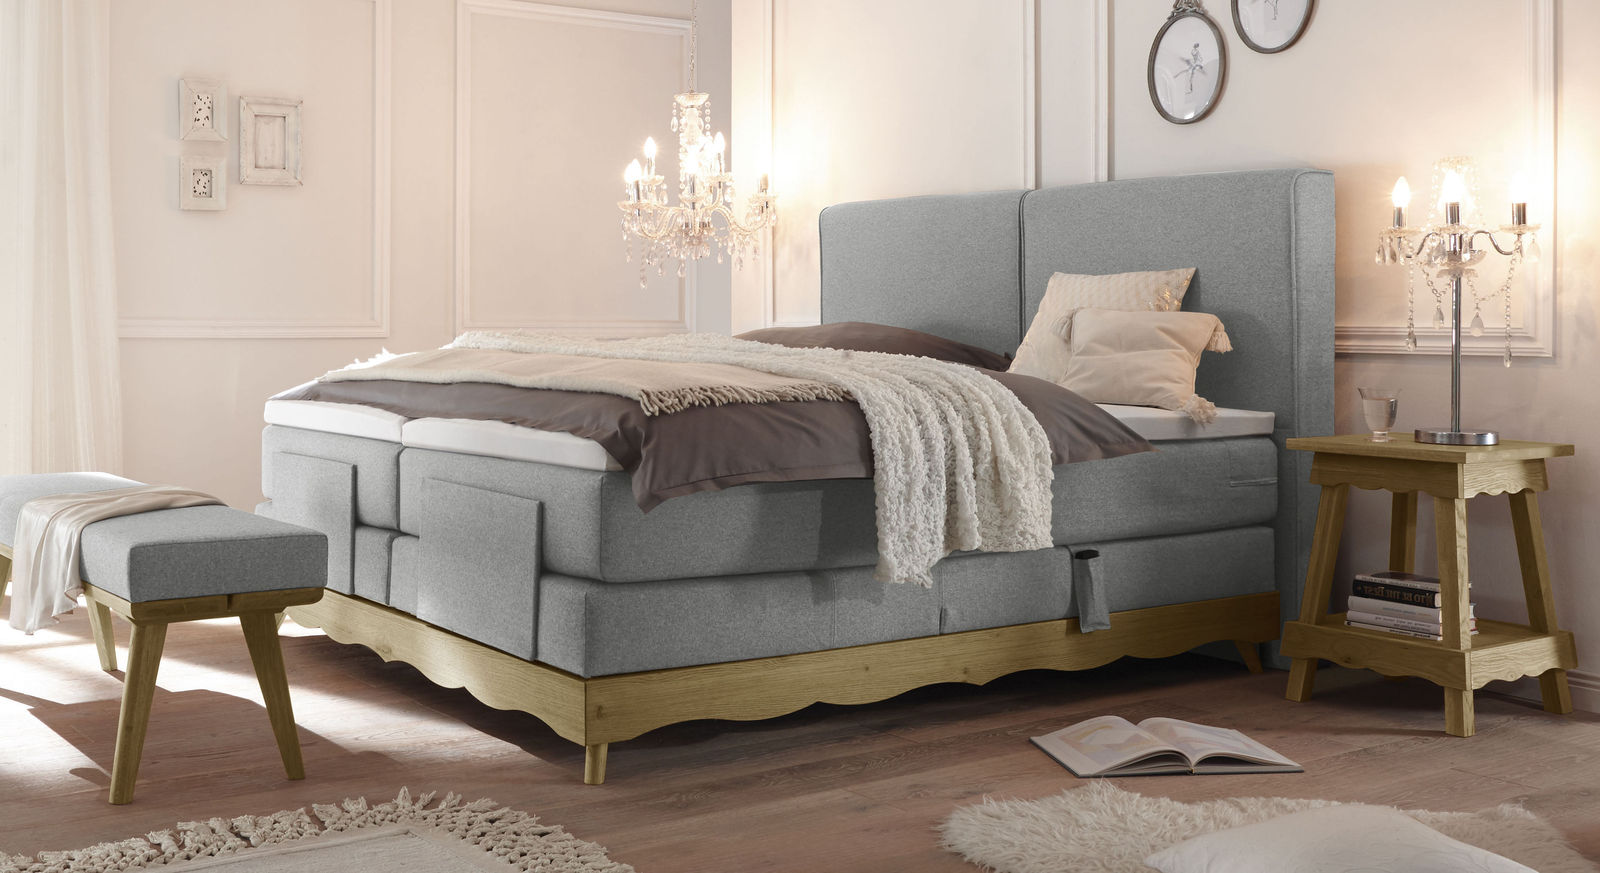 elektro boxspringbett inklusive luxus matratze und topper bakar. Black Bedroom Furniture Sets. Home Design Ideas